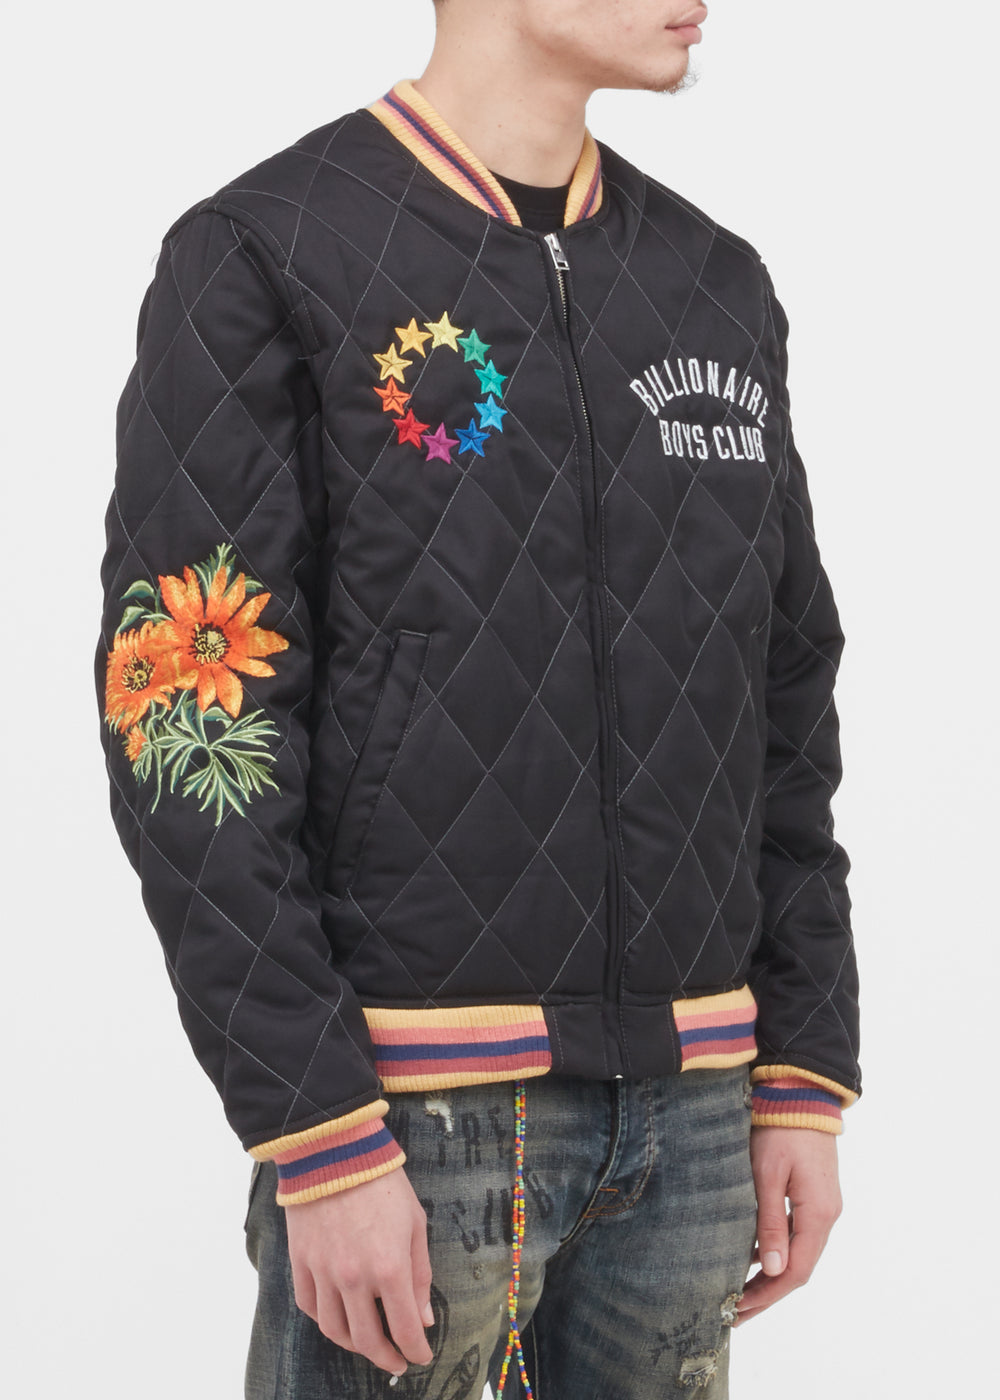 billionaire-boys-club-bbc-inner-pc-jkt-801-1401-blk-2